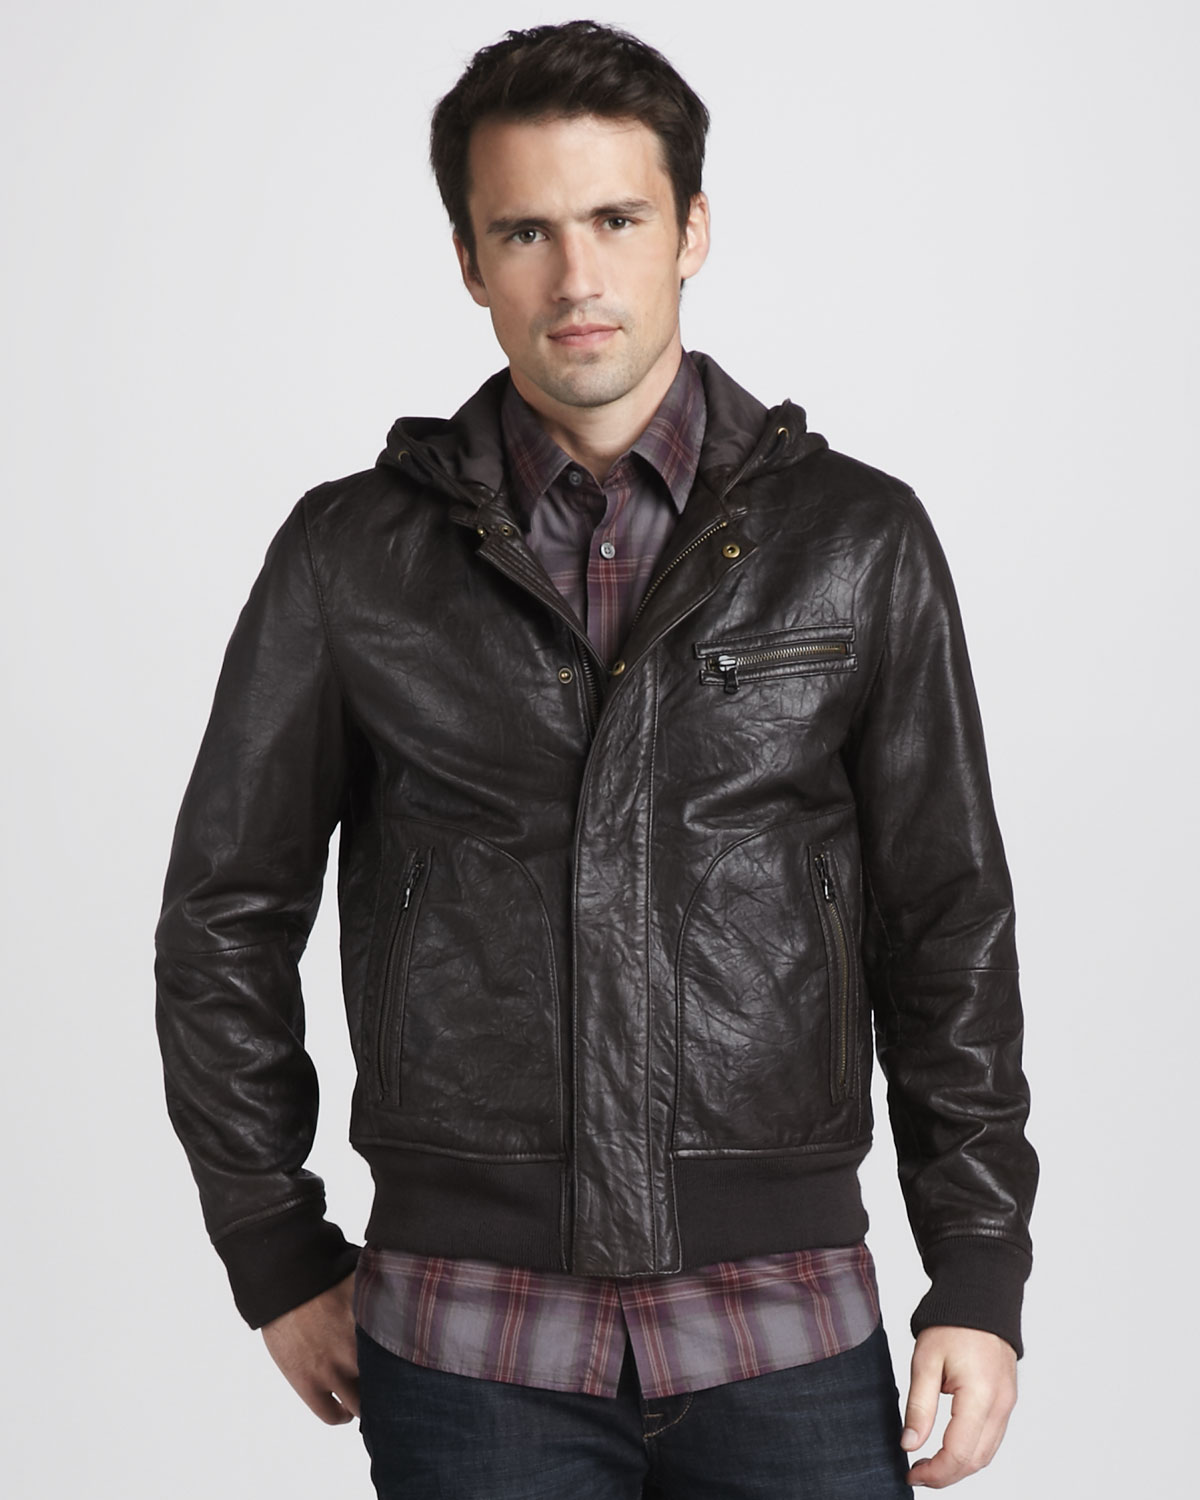 John varvatos Hooded Leather Bomber Jacket in Brown for Men | Lyst